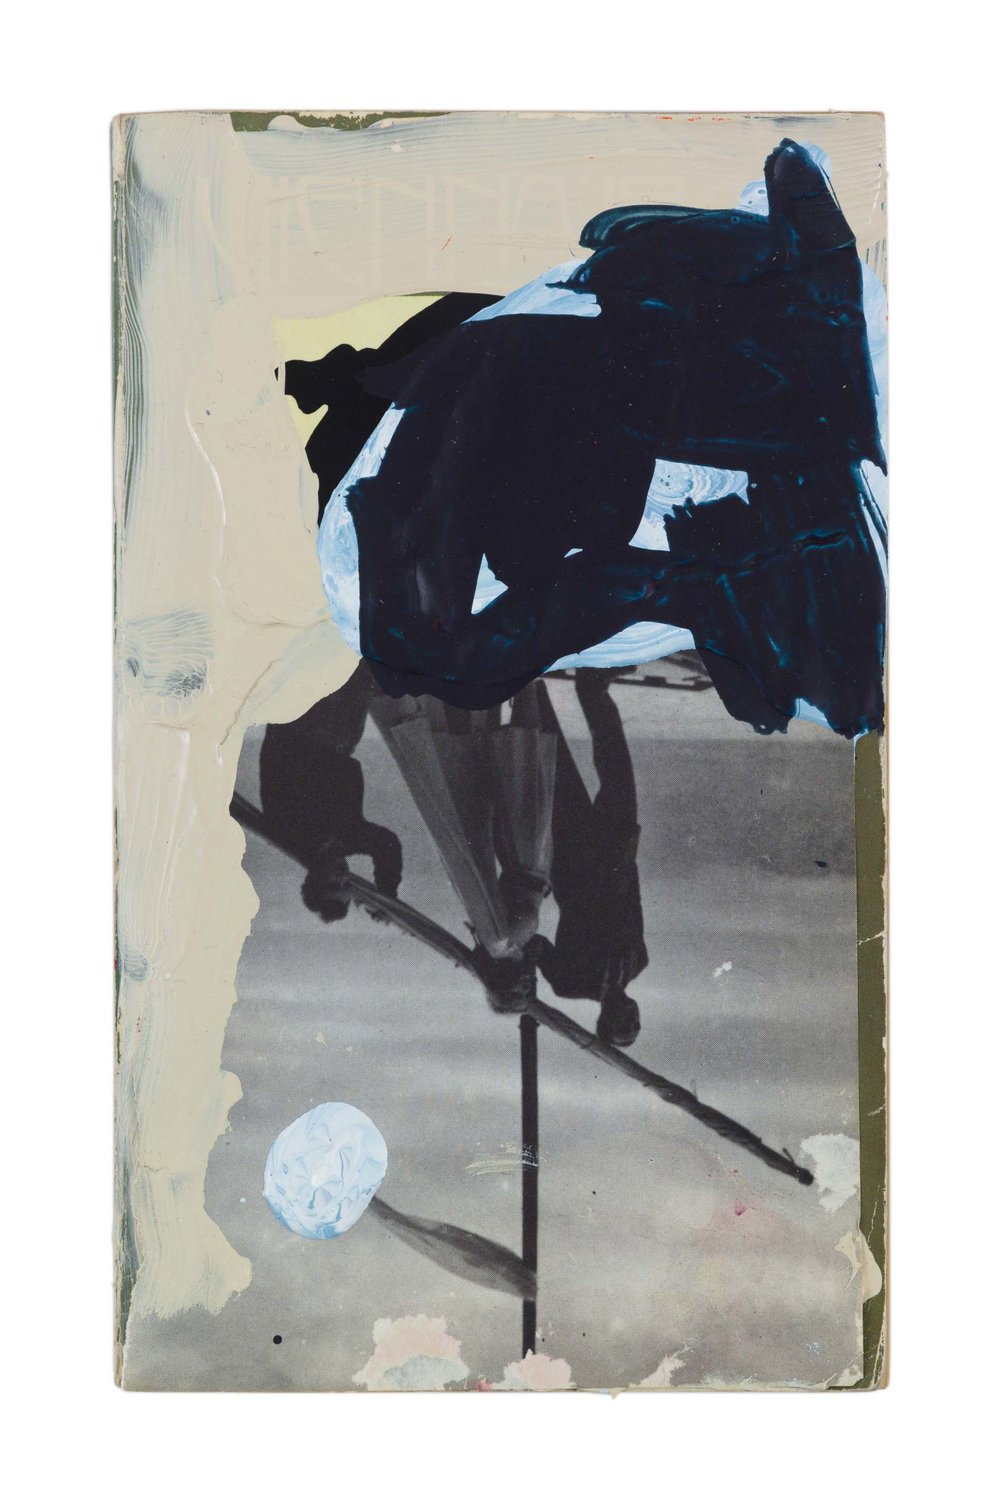 Drew Beattie and Ben Shepard  Vienna 1900 - Games with Love and Death  acrylic and collage on used book 2016 7 ⅛ x 4 ⅜ inches